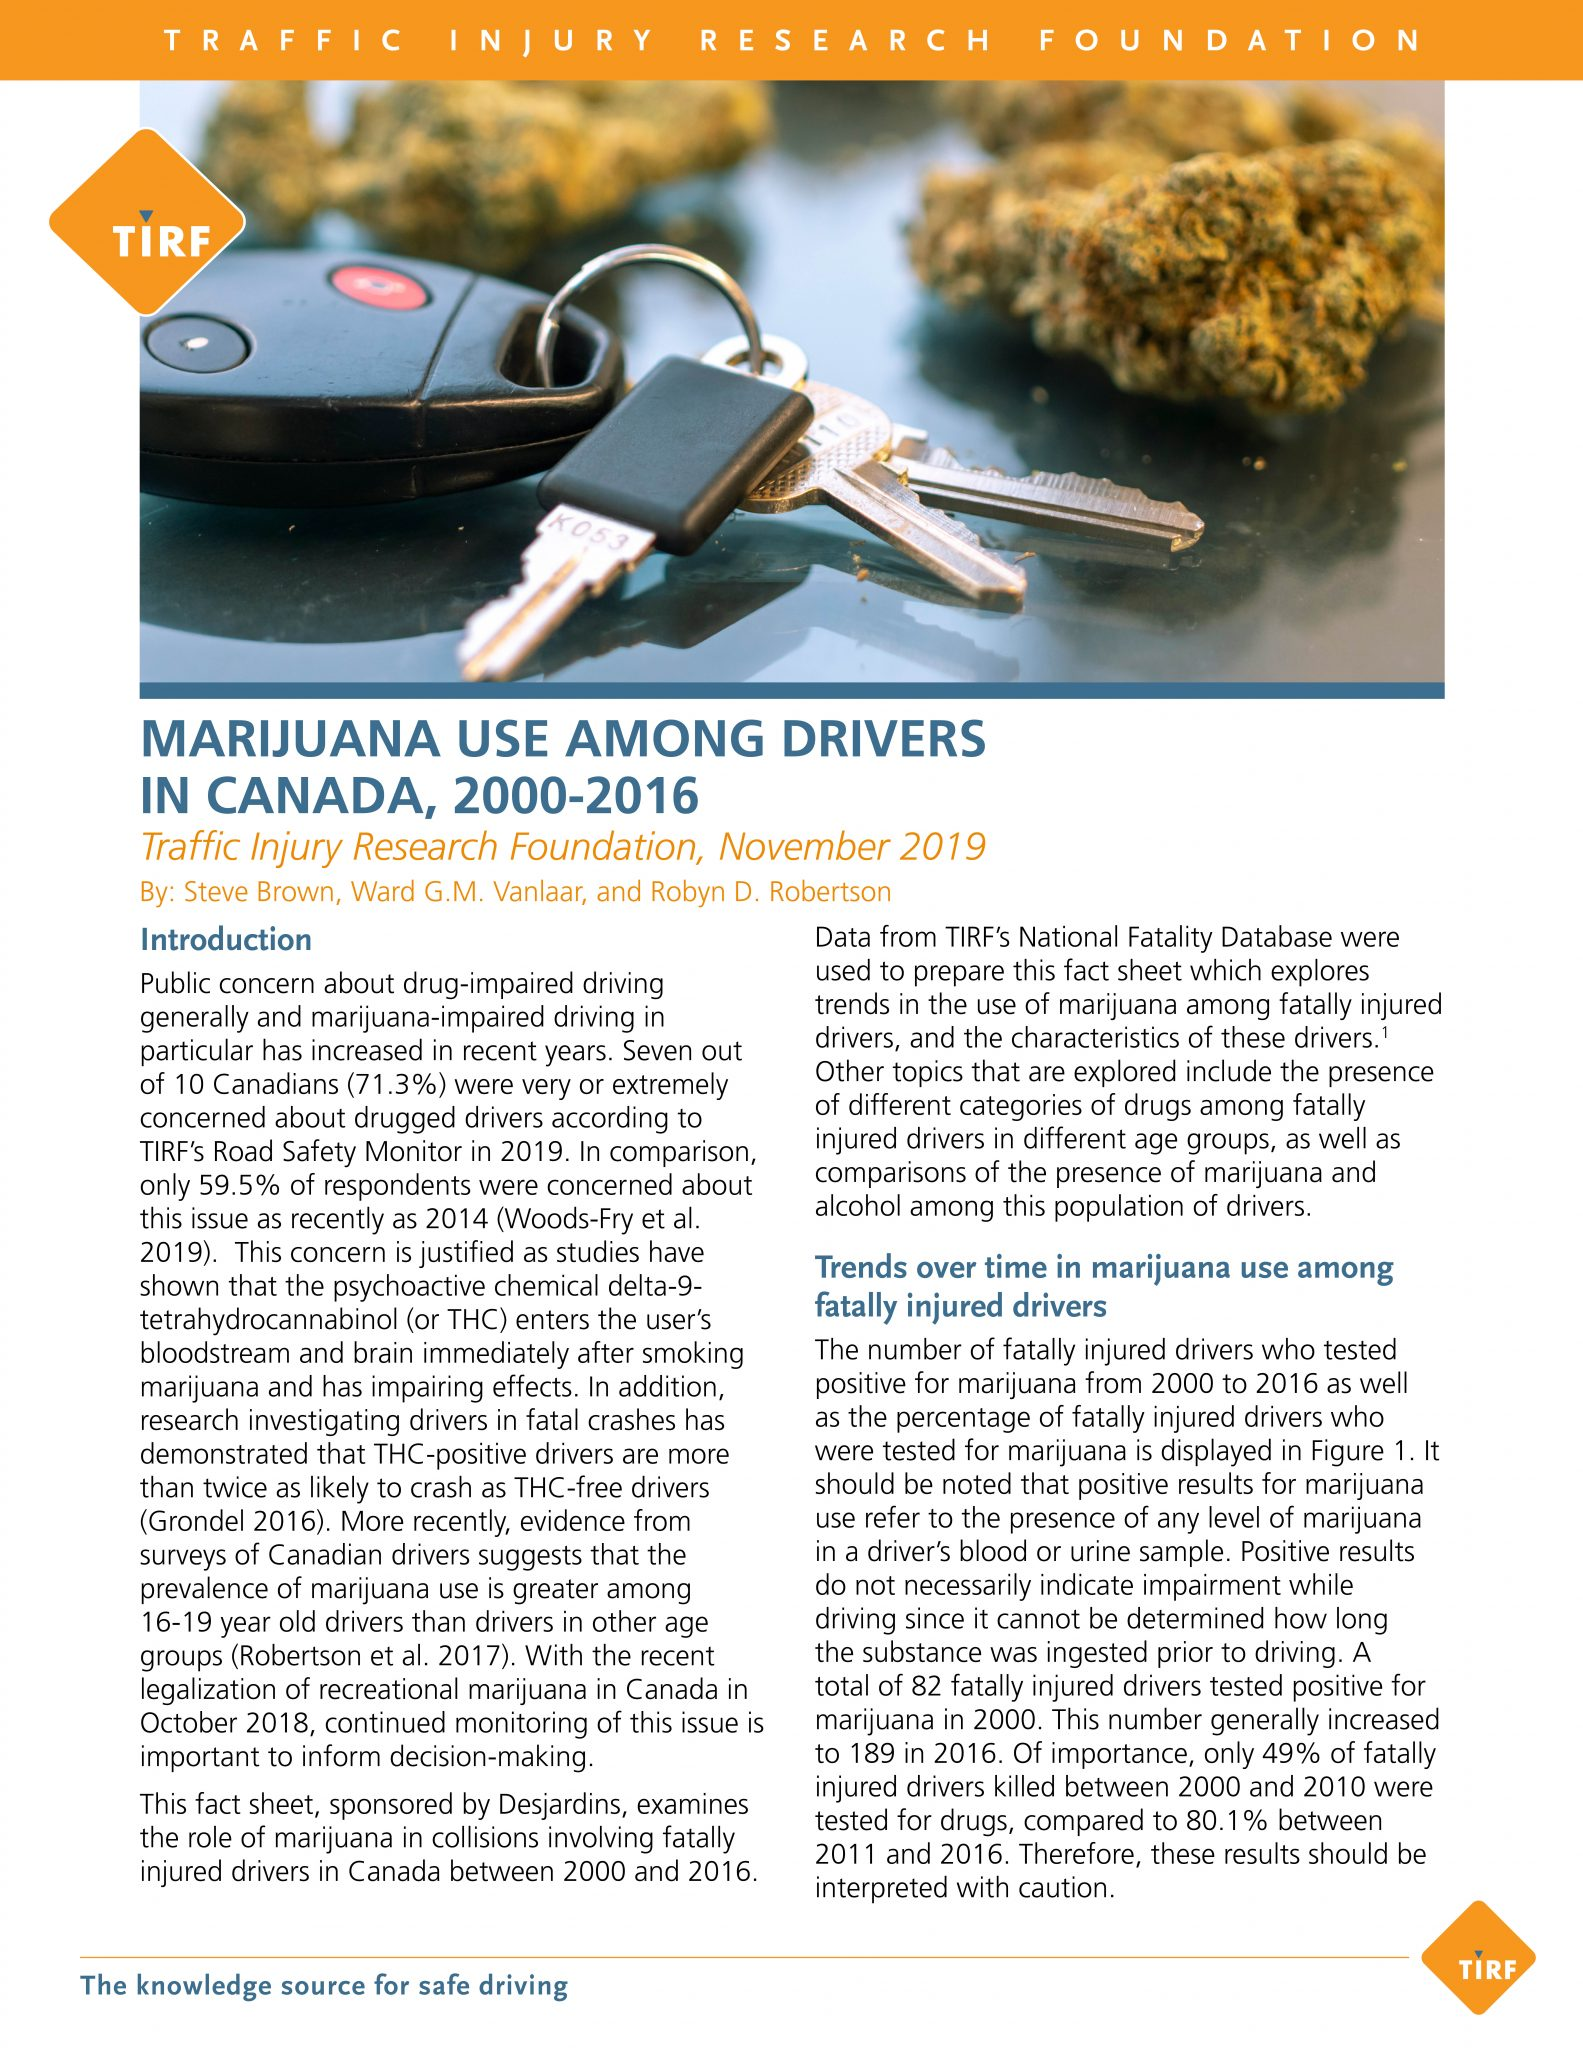 Marijuana Use Among Drivers in Canada, 2000-2016